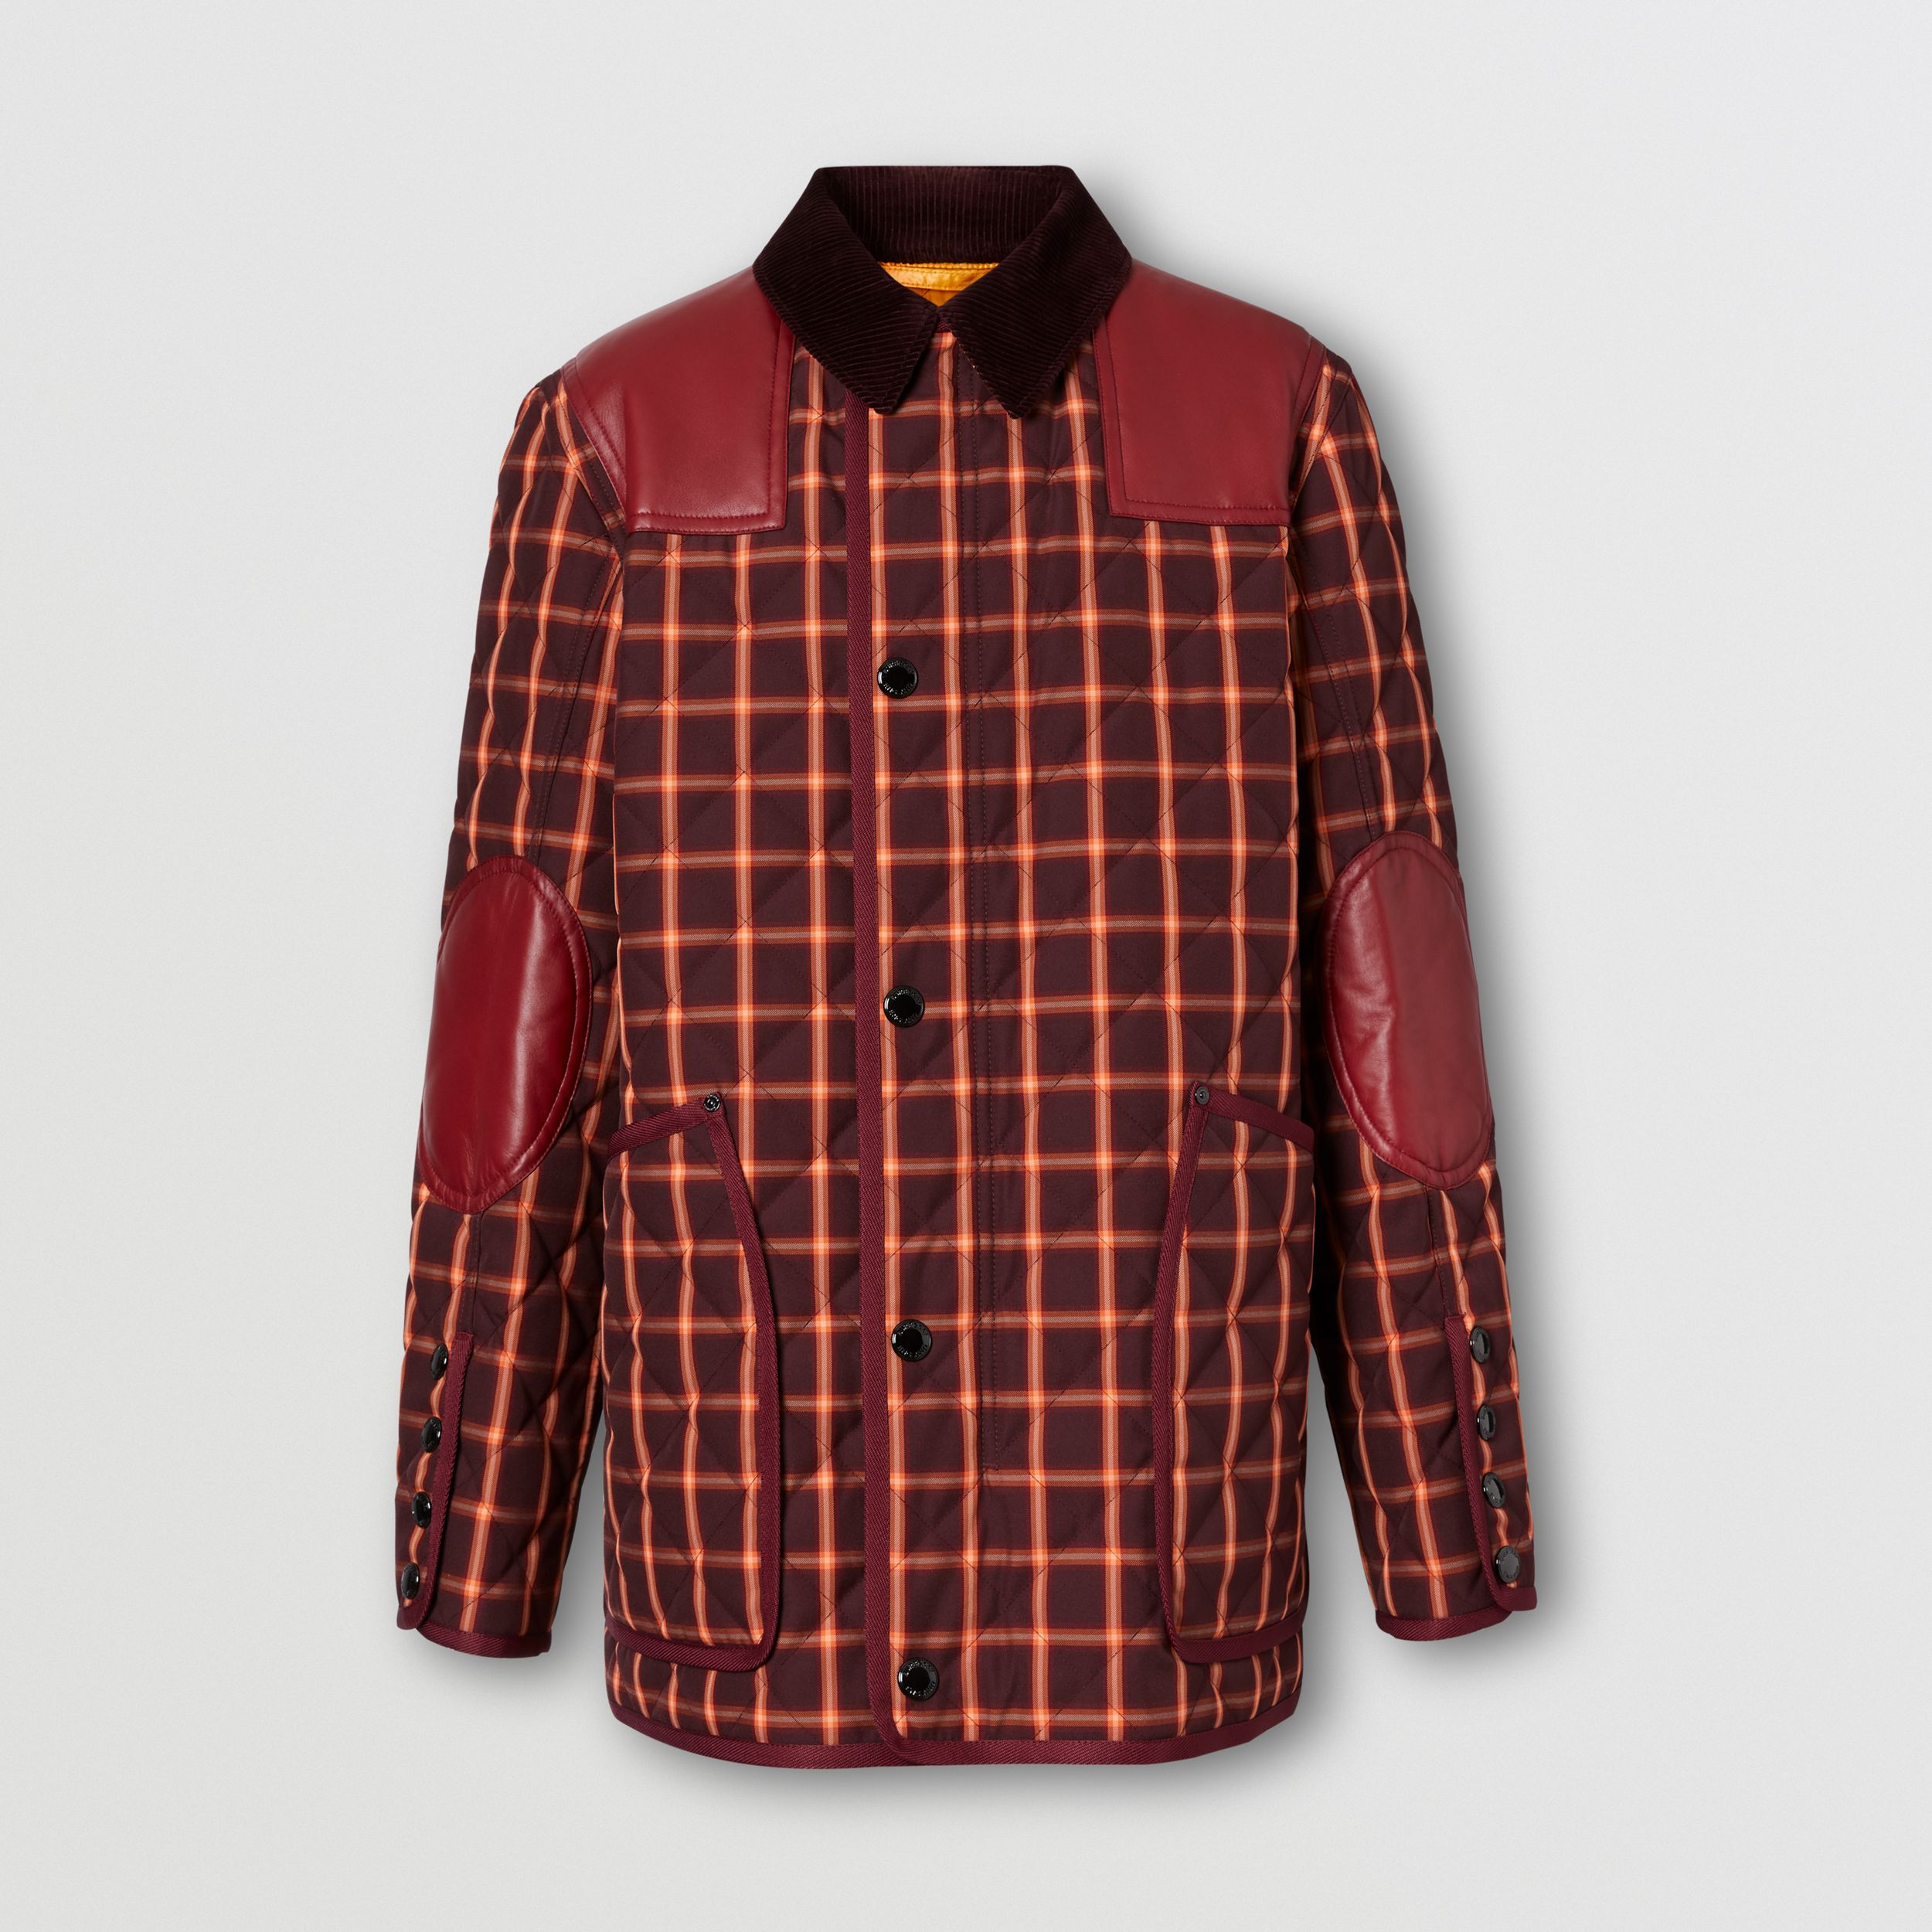 Lambskin Trim Check Technical Cotton Barn Jacket in Burgundy | Burberry Canada - 4